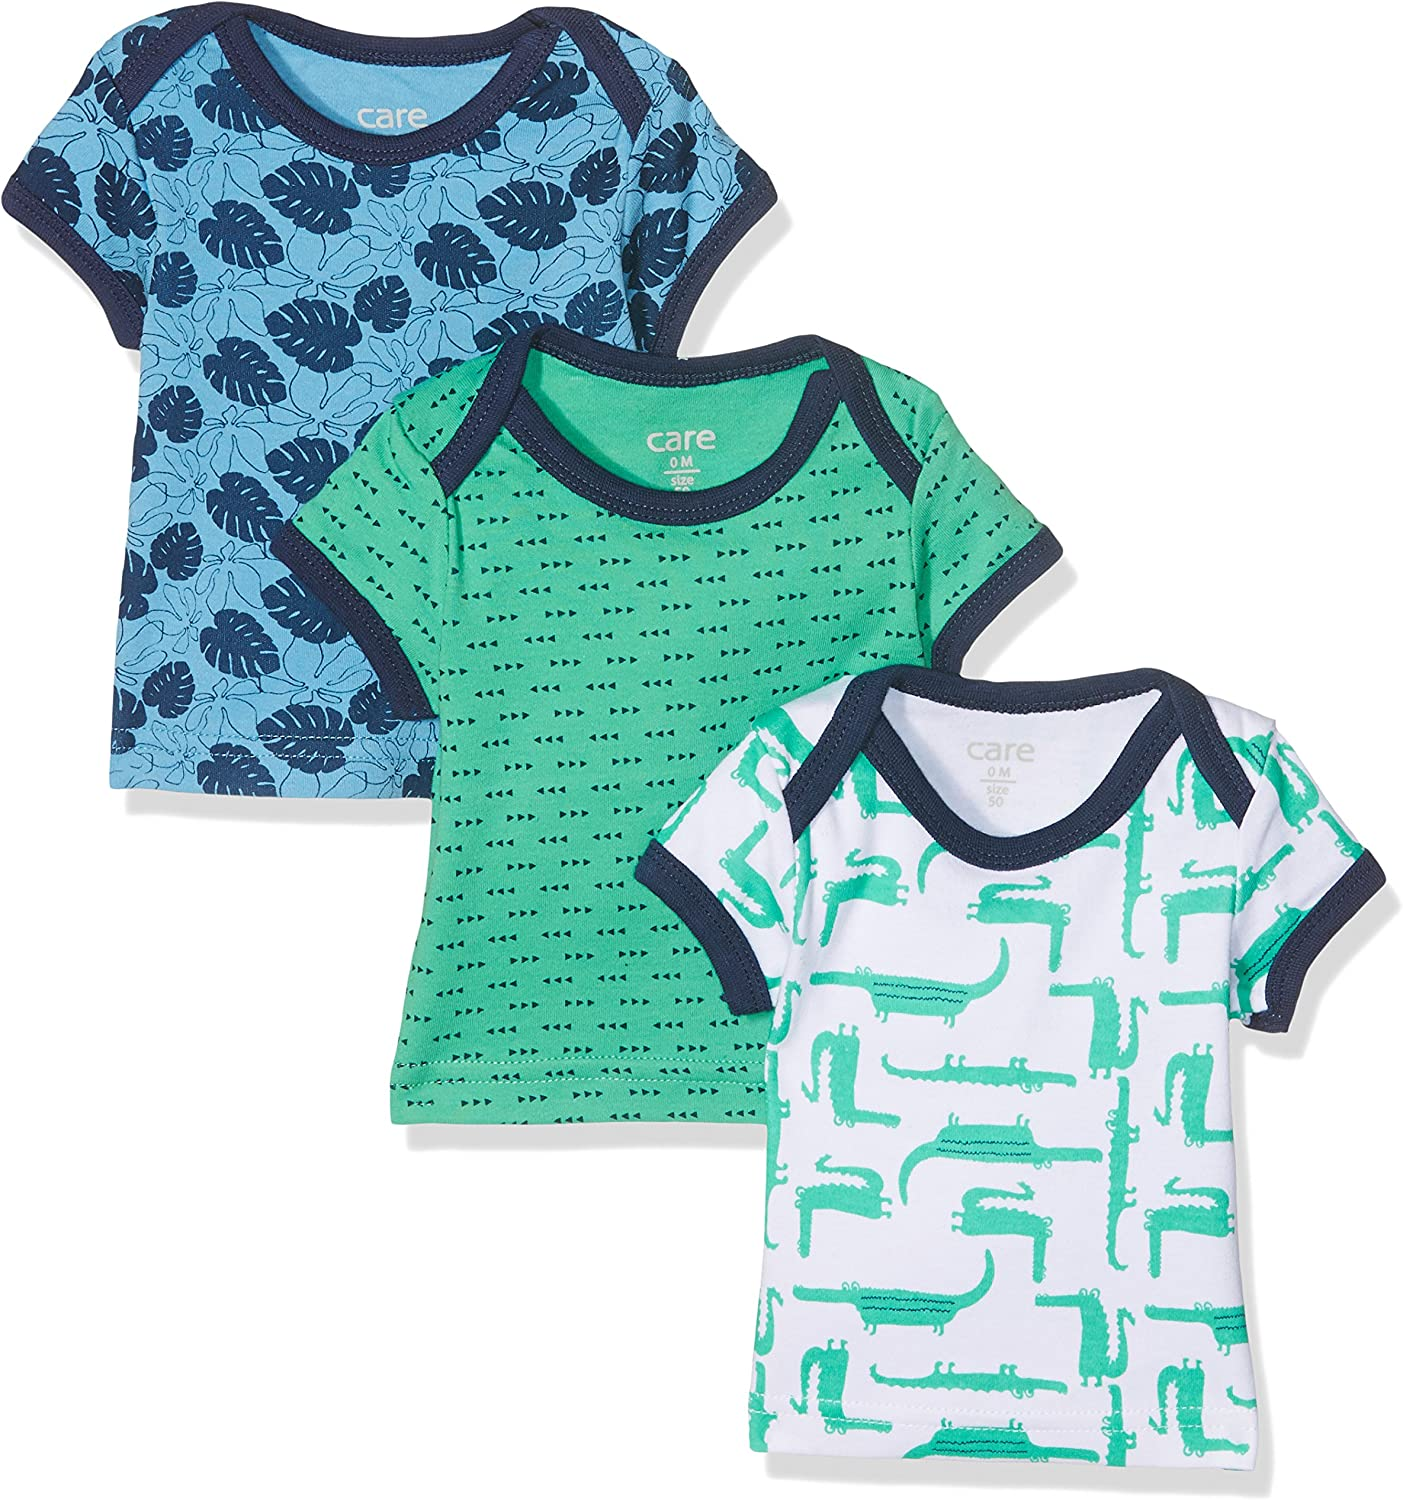 56 3-pack Care Baby Boys Bard T-Shirt Multicoloured Winter Green